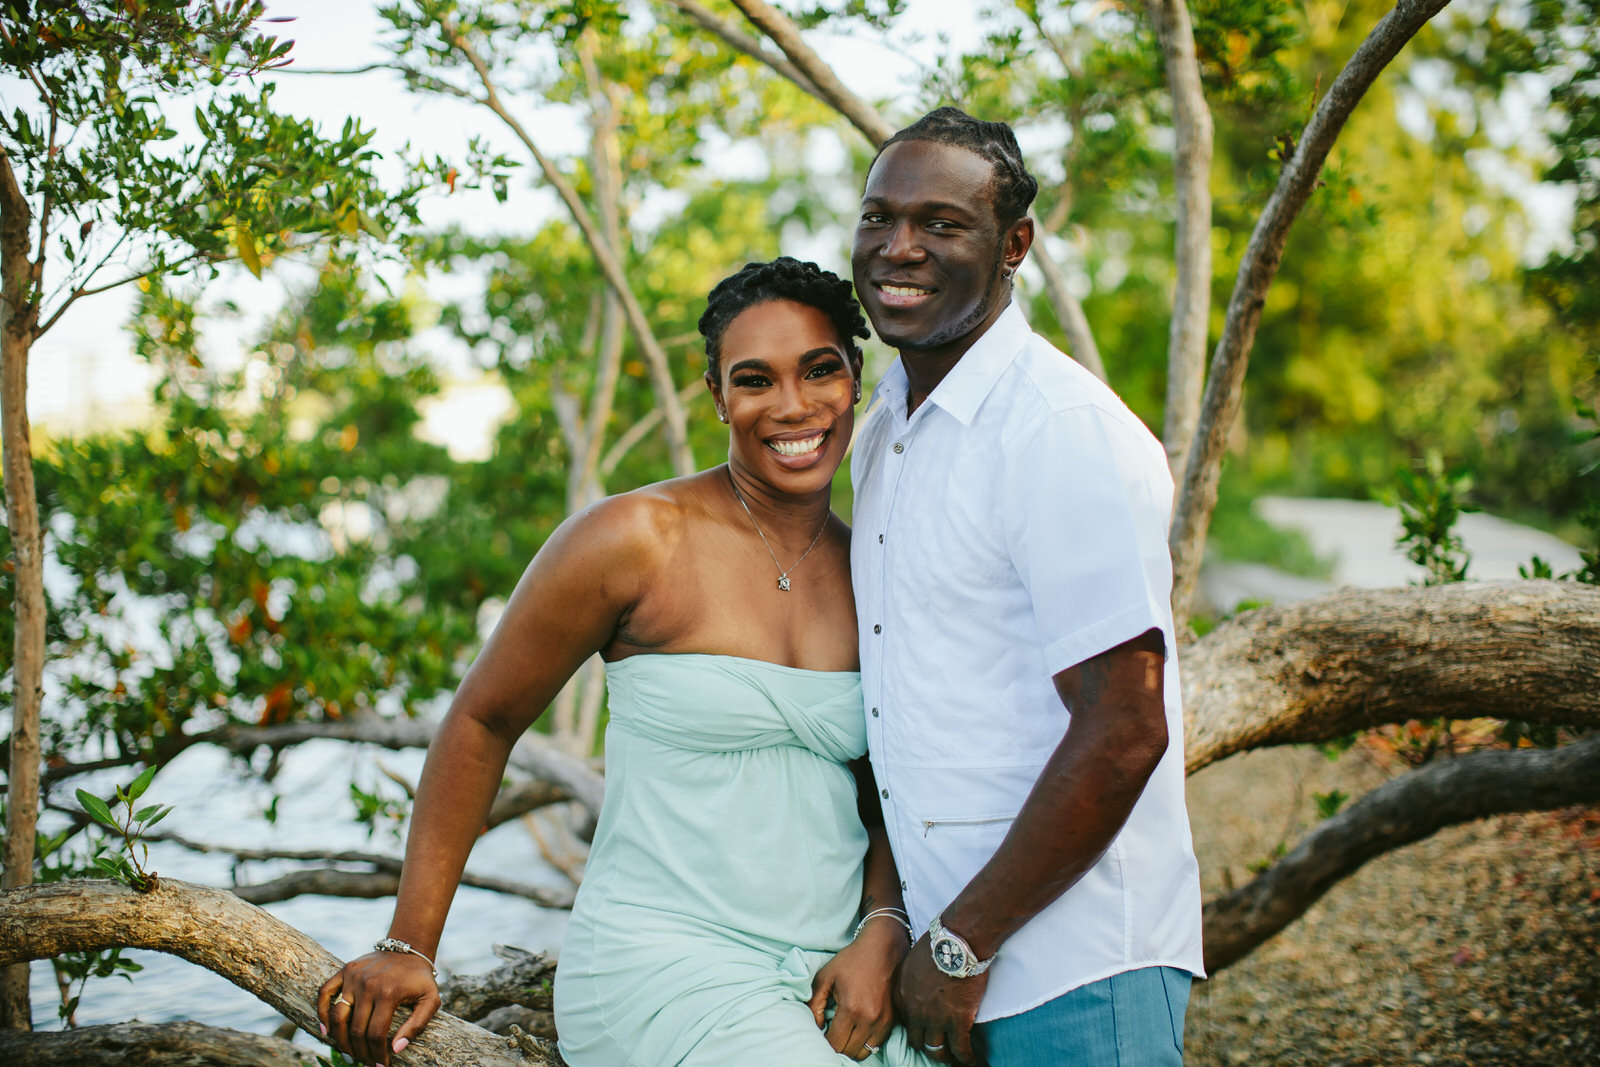 engagement-portraits-fort-lauderdale-nature-tiny-house-photo-58.jpg